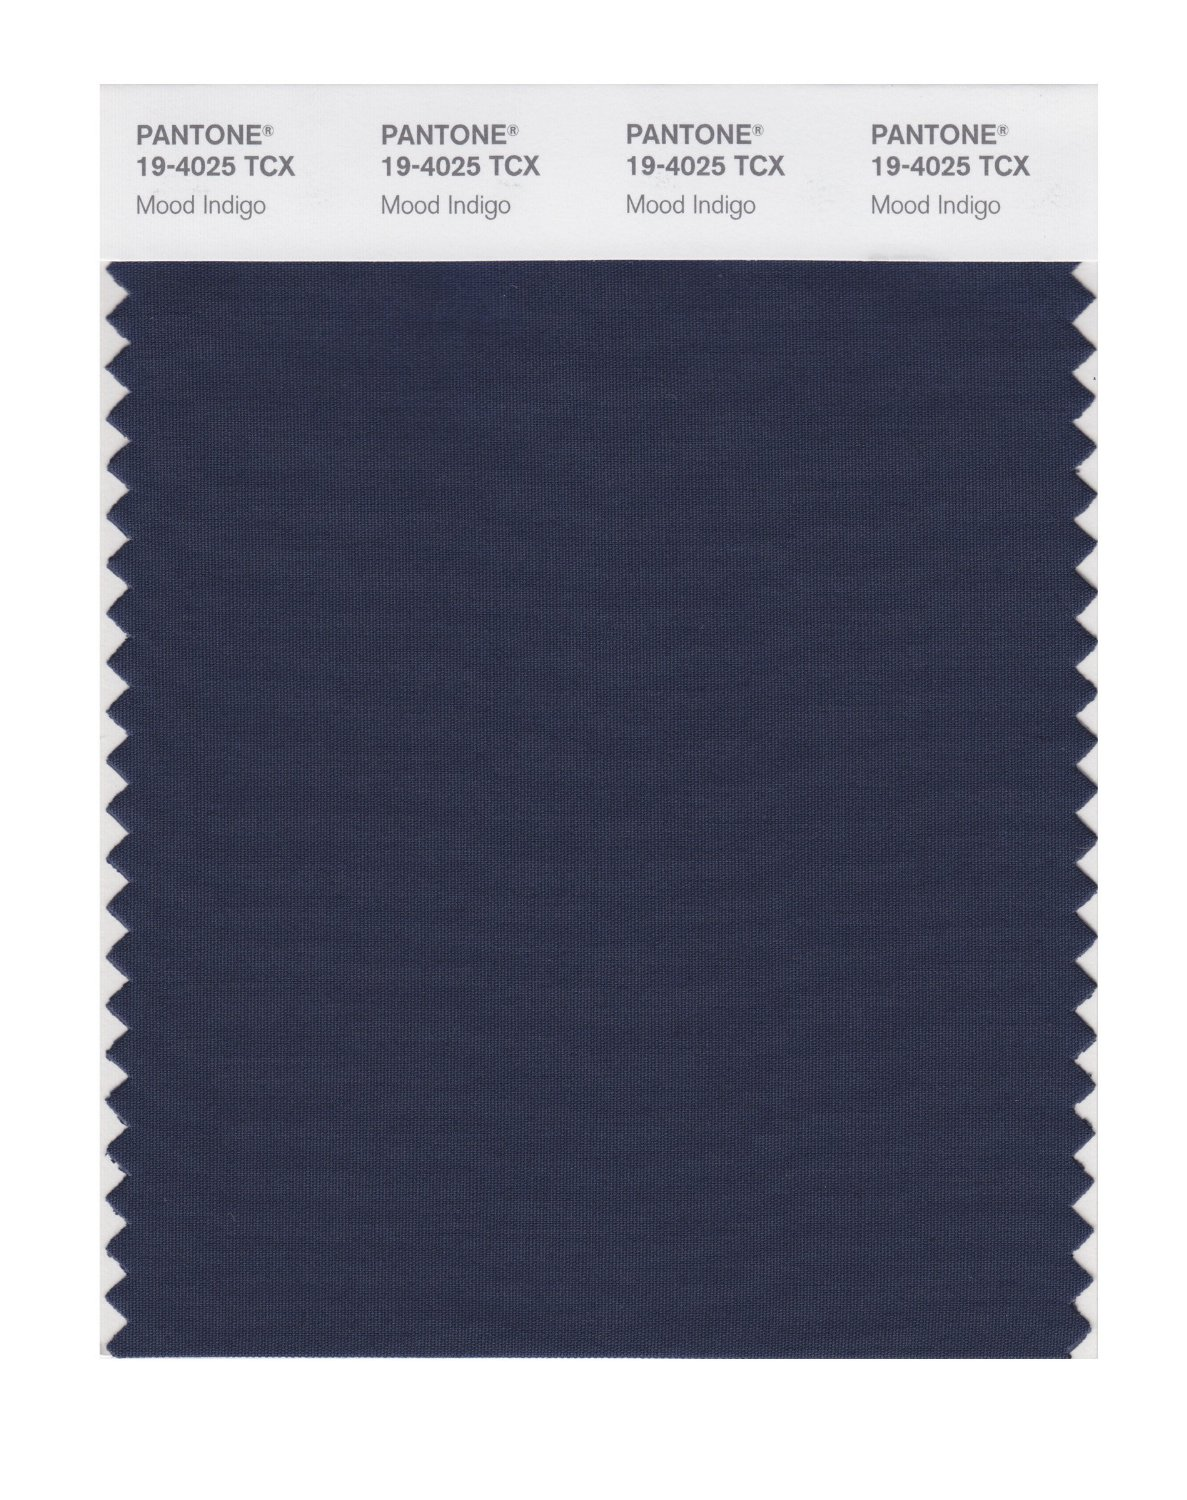 Pantone Smart Swatch 19-4025 Mood Indigo